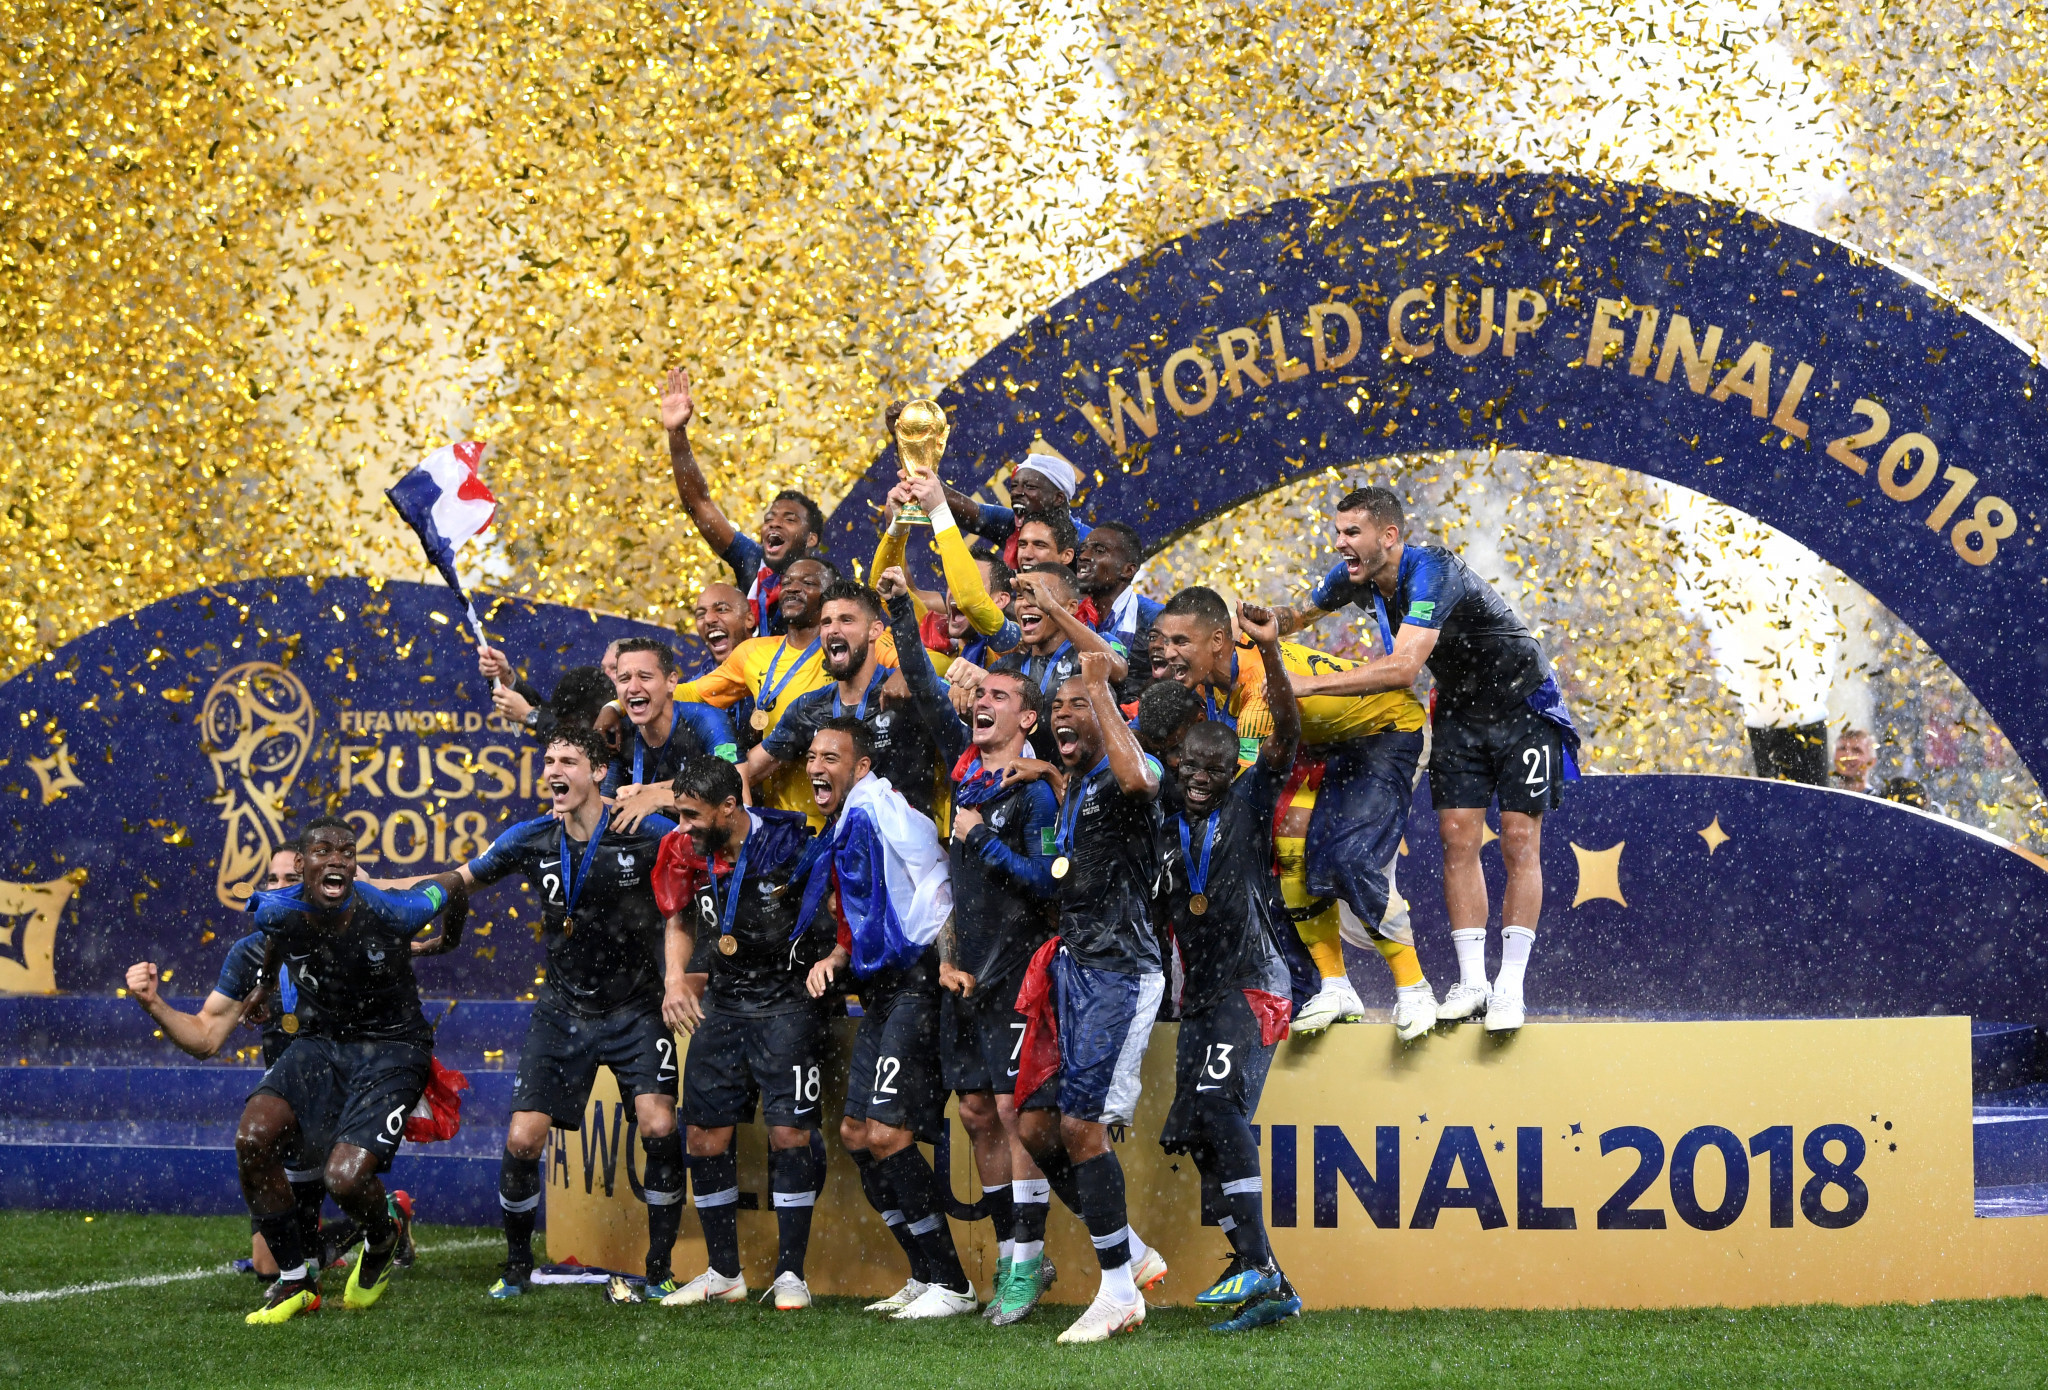 UEFA and CONMEBOL have expressed concerns over the proposal for biennial FIFA World Cups ©Getty Images